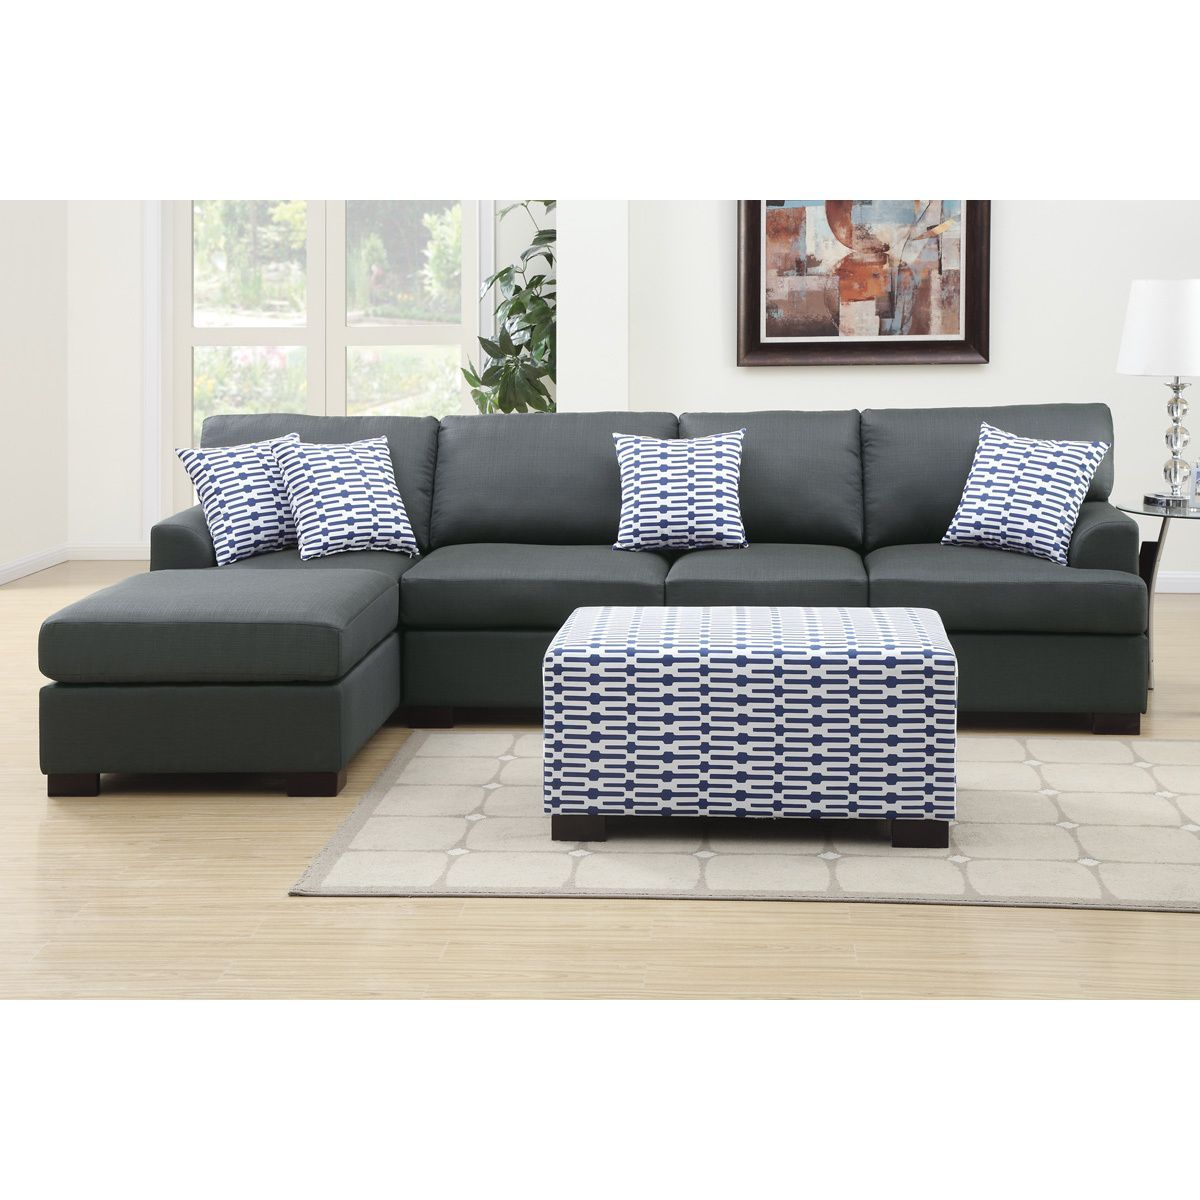 Farsund Large 2 Piece Blended Linen Sectional Sofa With intended for size 1200 X 1200